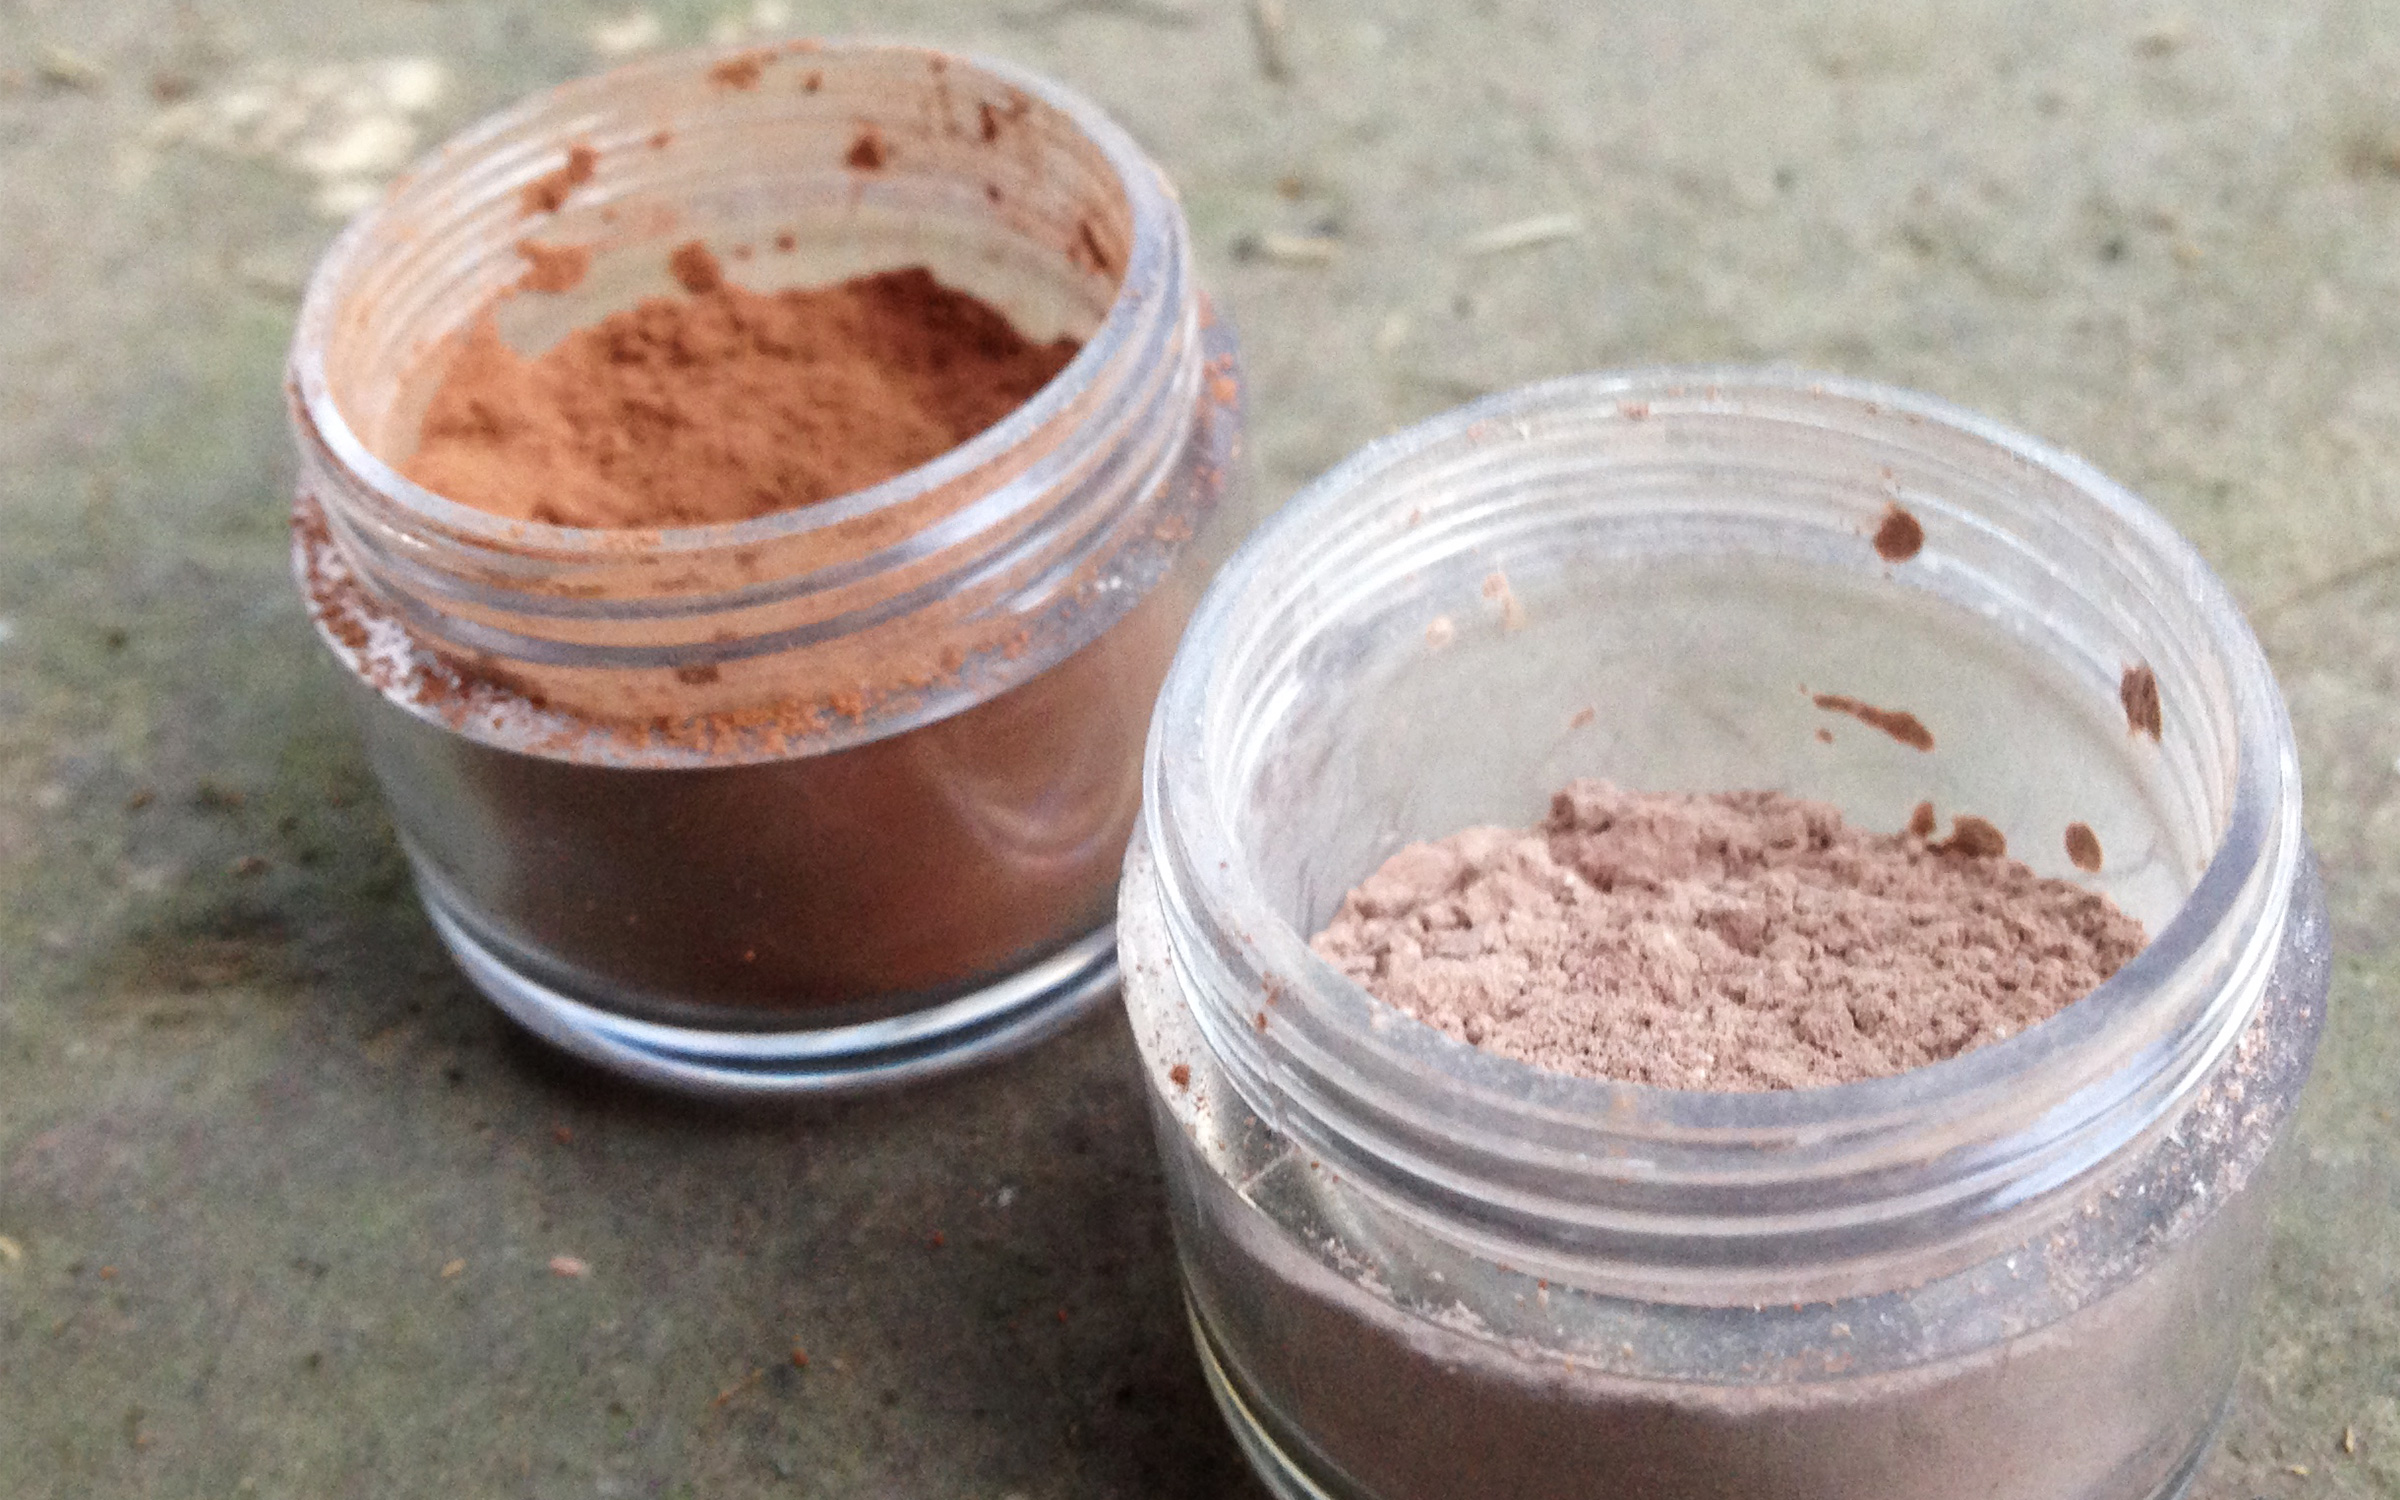 recipe image: natural eyeshadow recipe with brown iron oxide